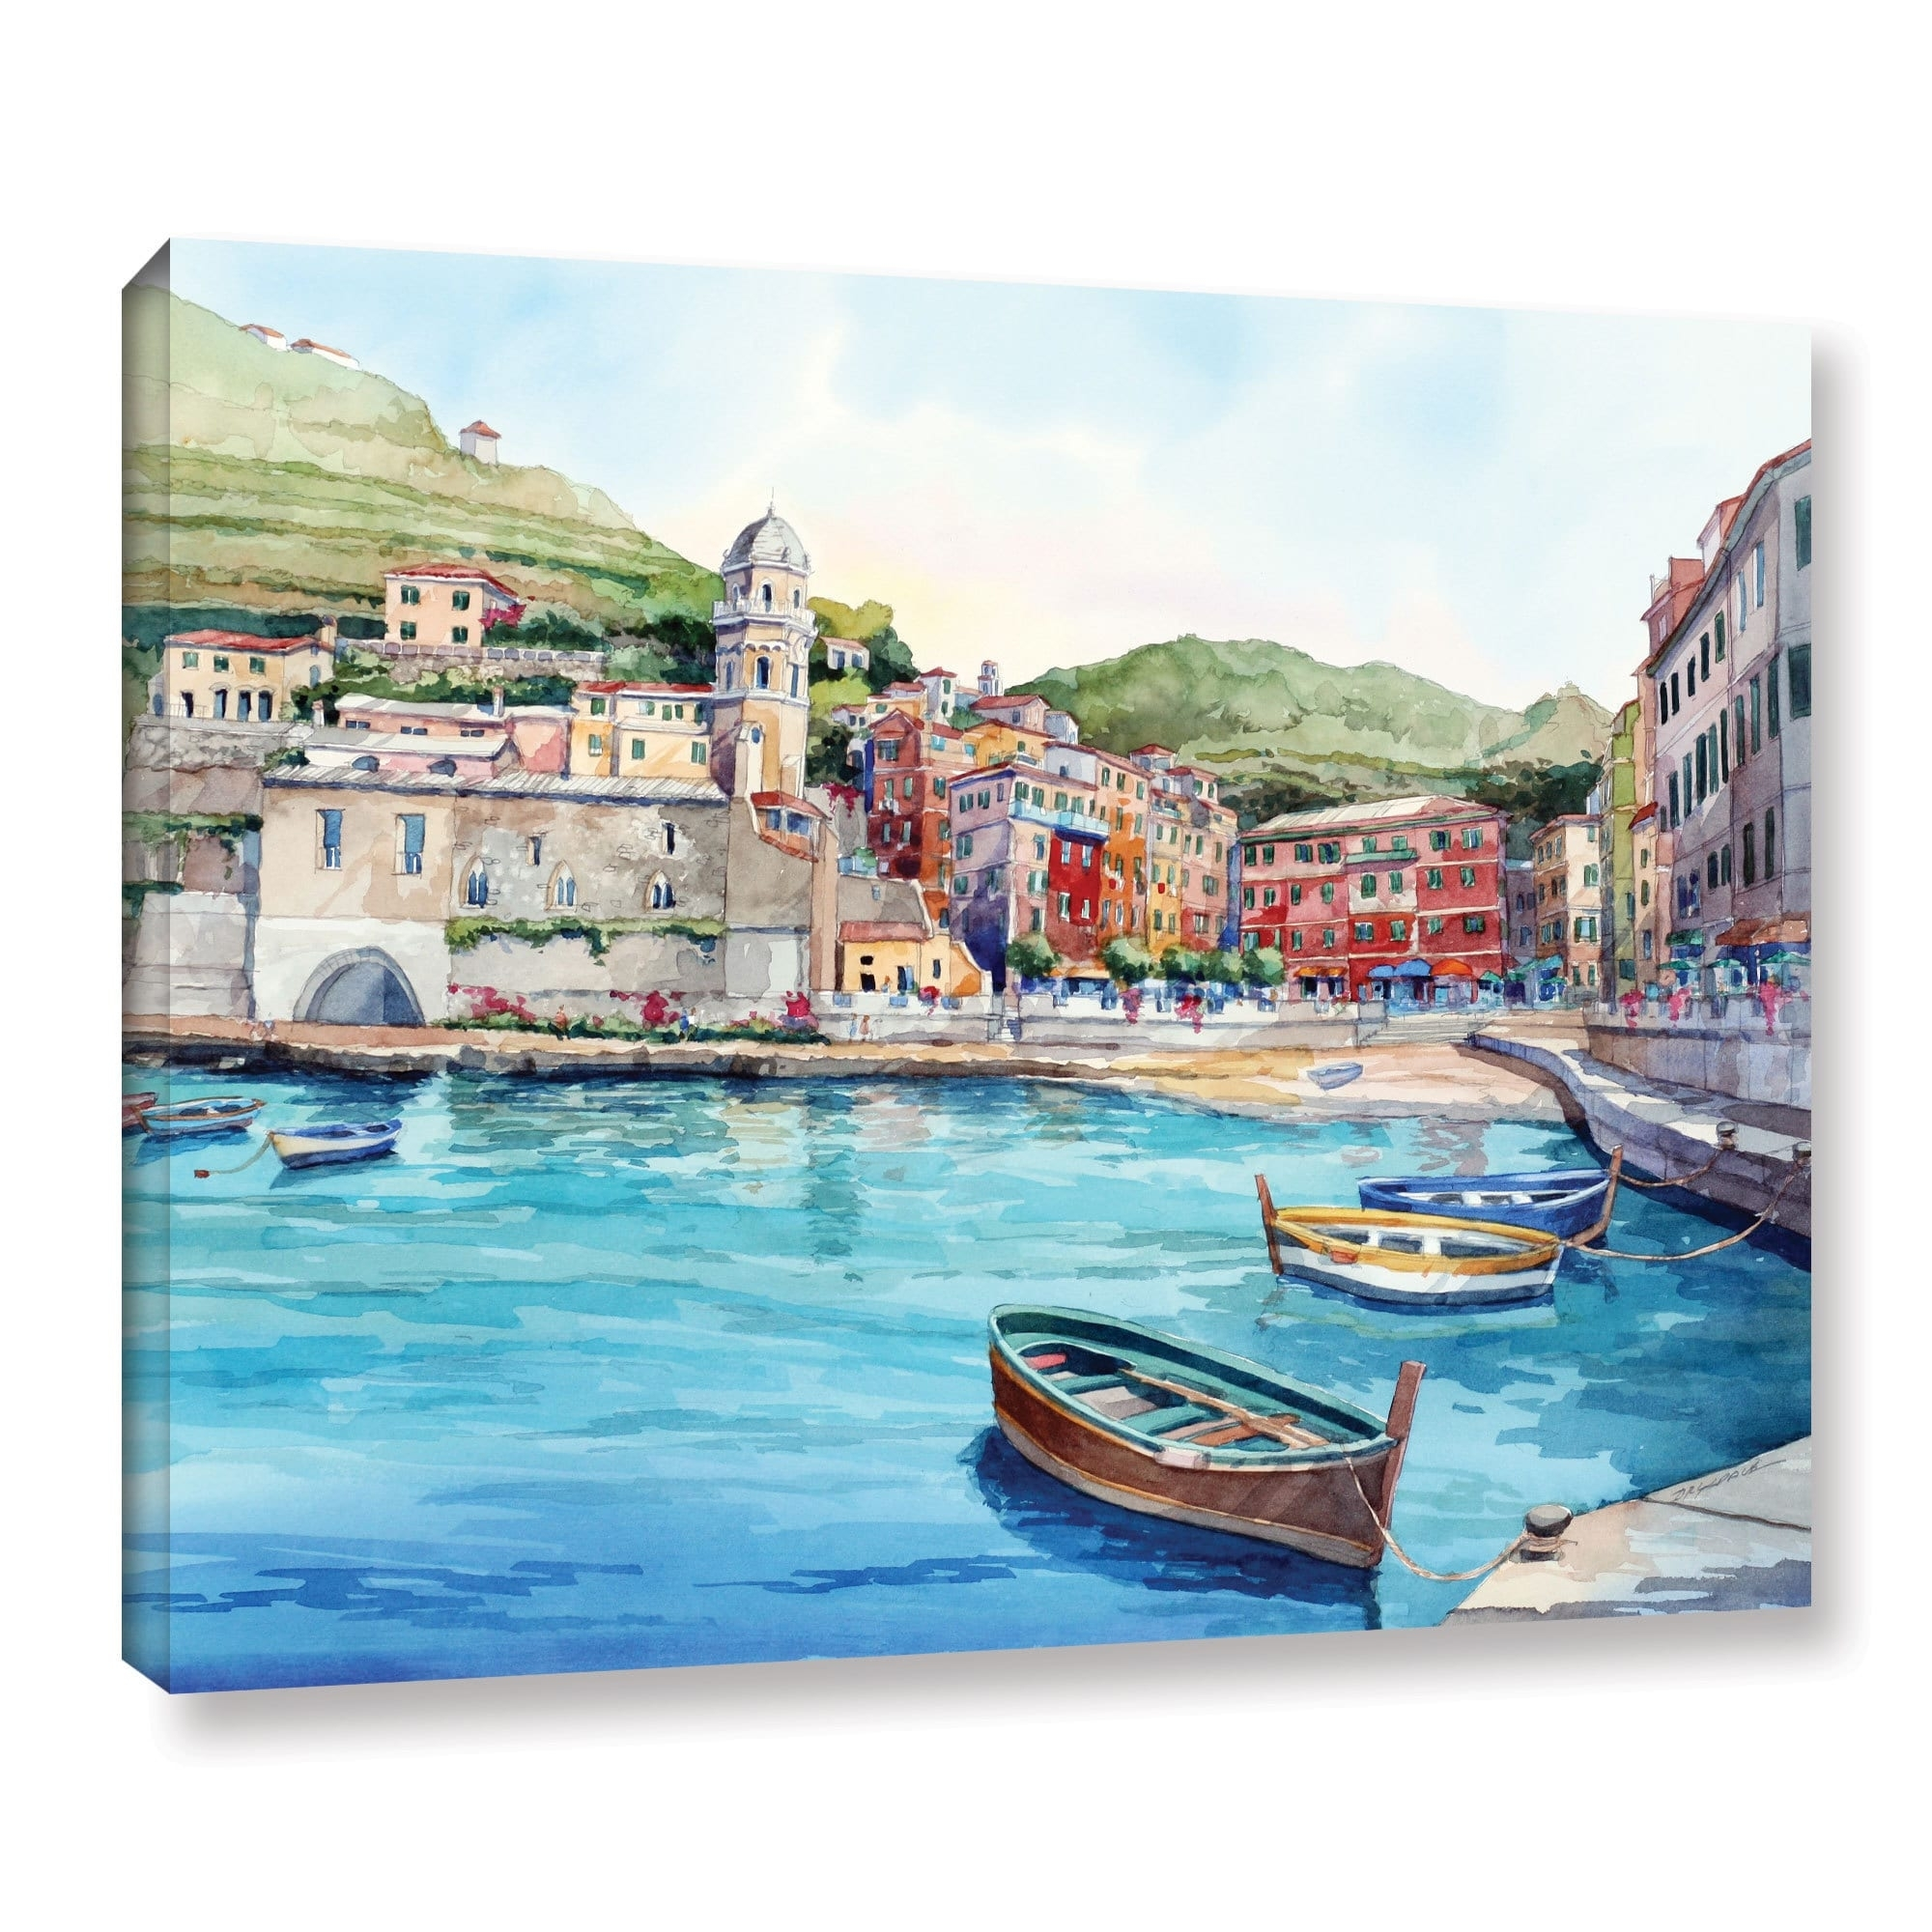 Artwall Bill Drysdale ' Vernazza ' Gallery Wrapped Canvas – Free Within Most Up To Date Joval Canvas Wall Art (View 8 of 15)